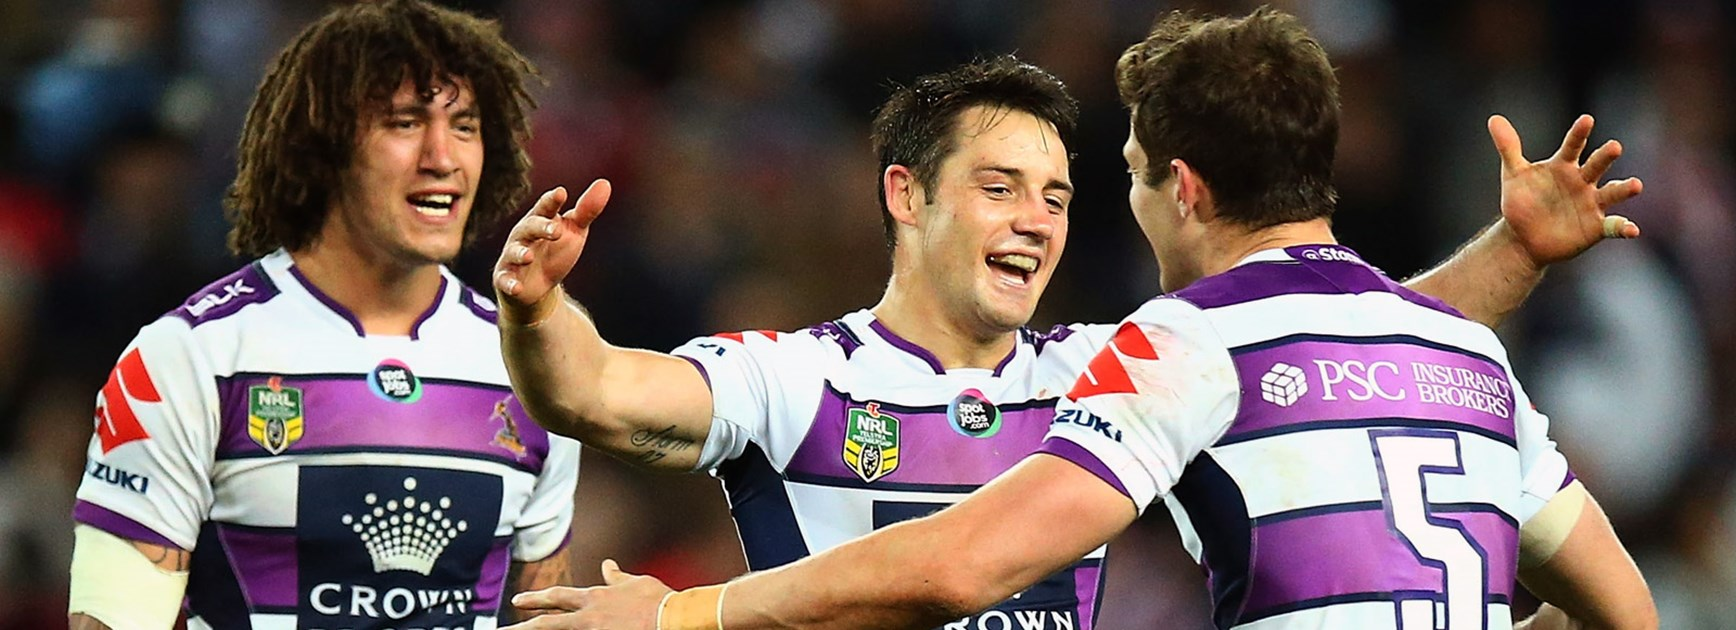 Cooper Cronk celebrates Melbourne's win over the Roosters.